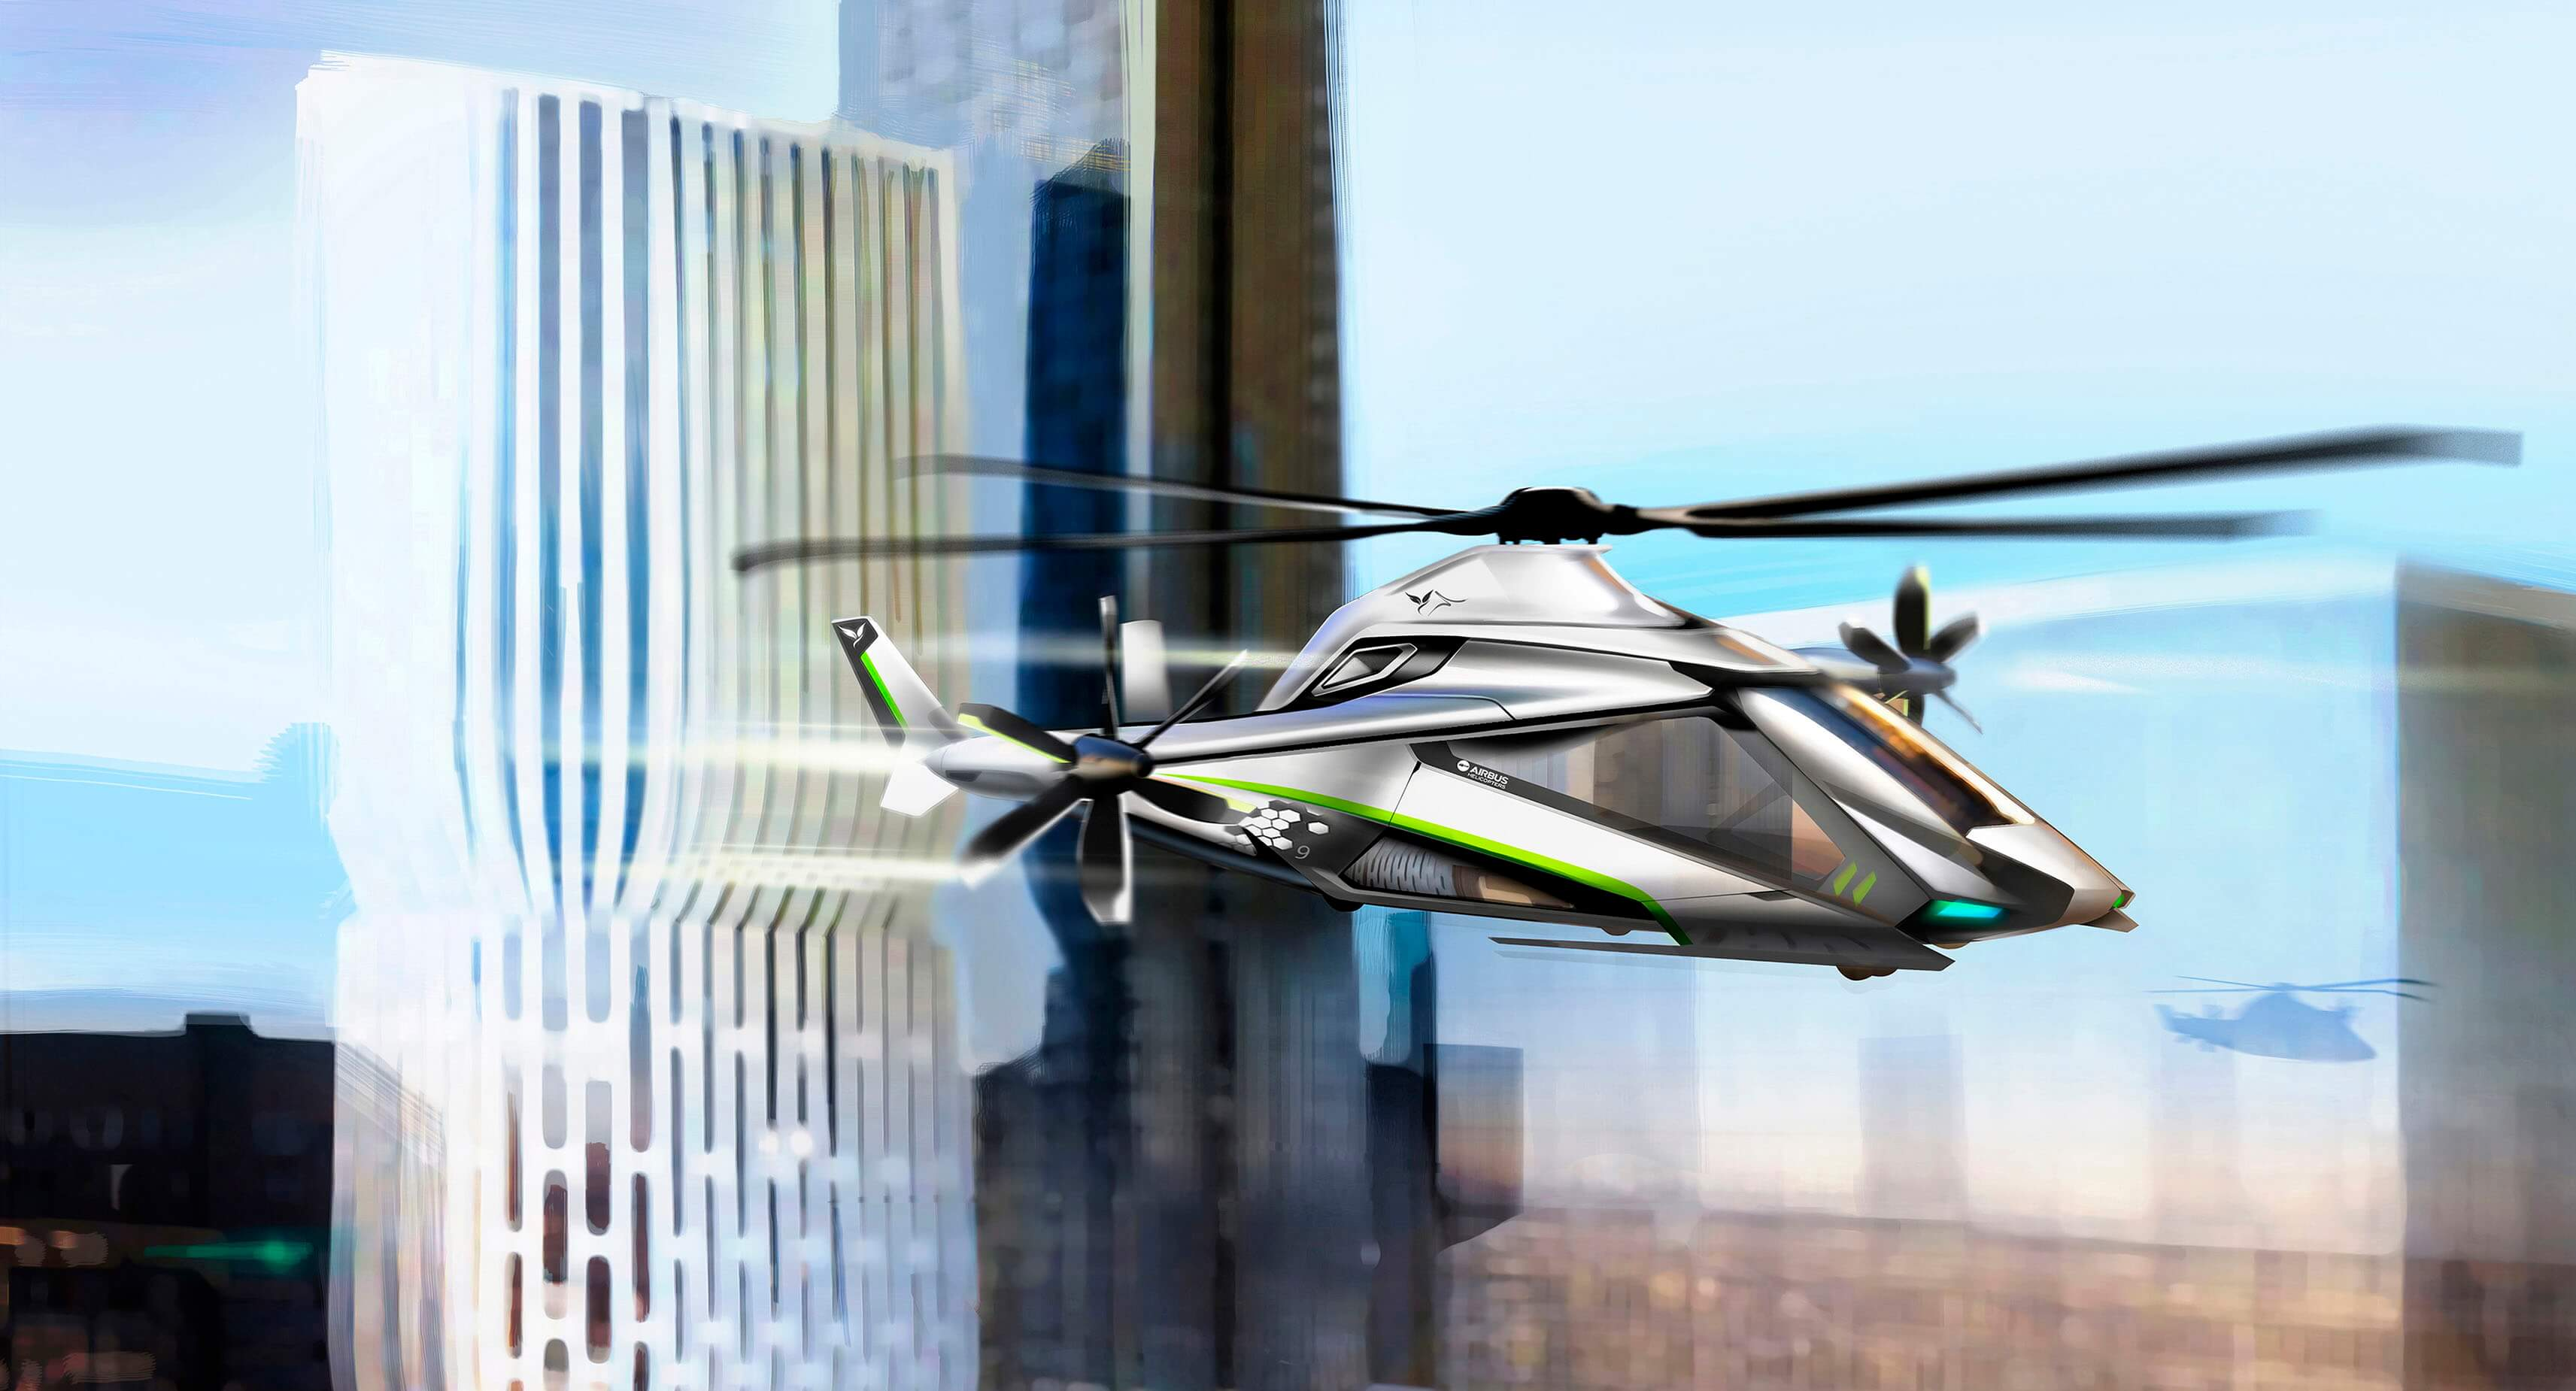 Airbus Helicopters expects to fly its Clean Sky 2 high-speed demonstrator in 2019. Airbus Helicopters Design Studio Image